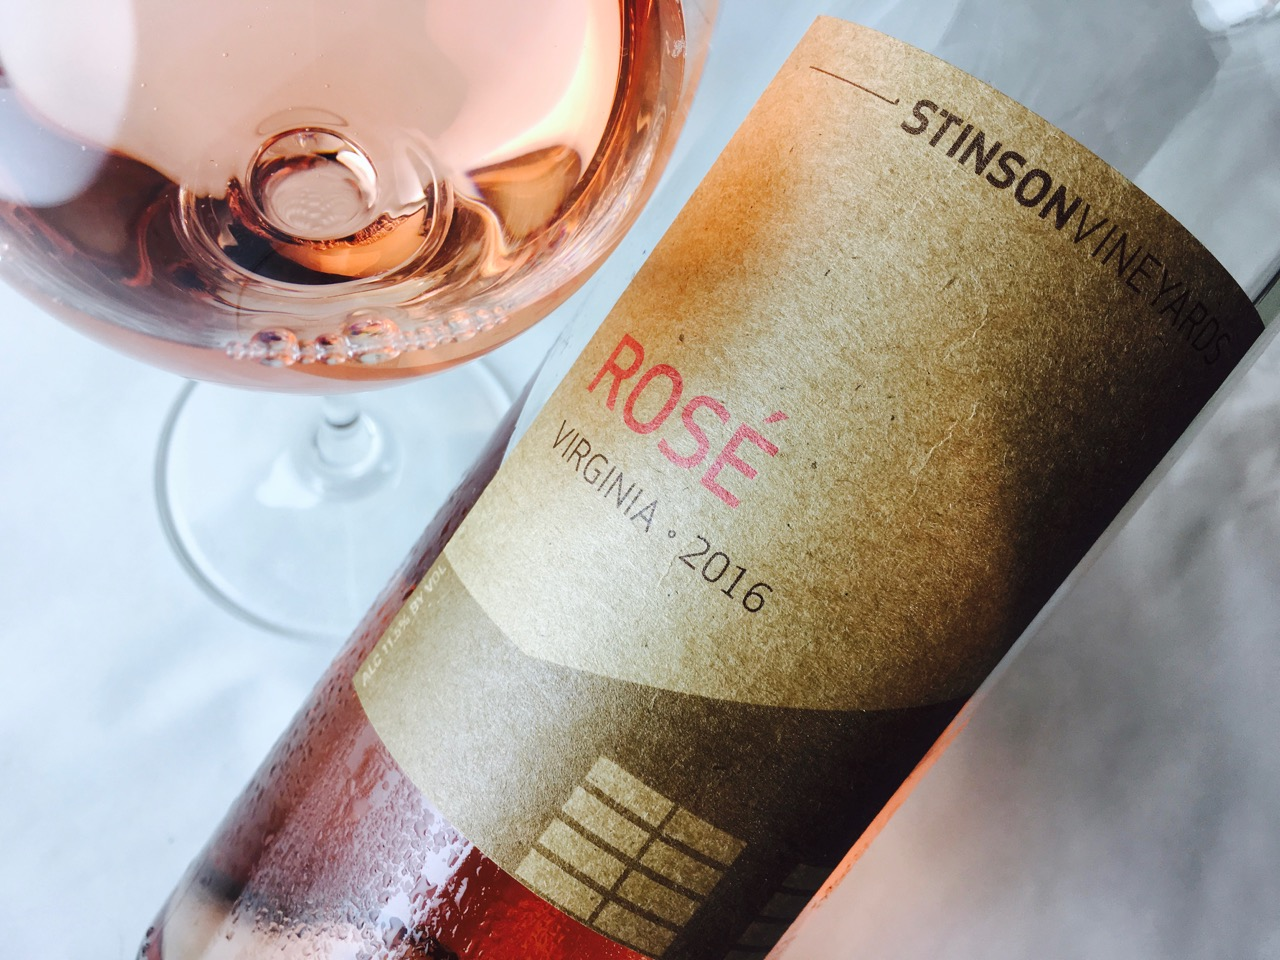 2016 Stinson Vineyards Rosé Virginia